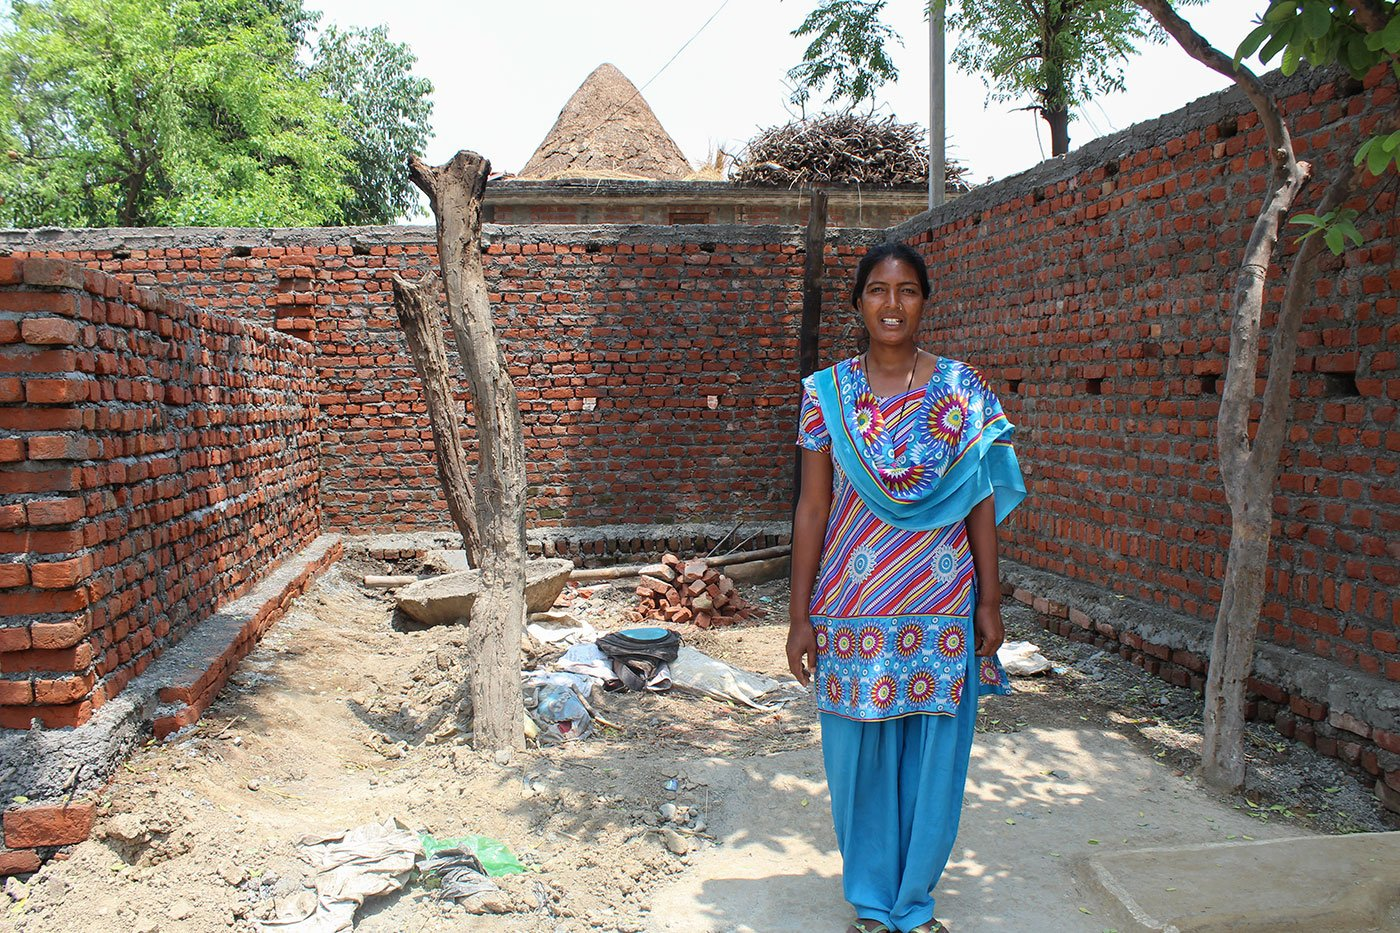 Mangola Singh in front of a semi constructed room which she has been trying to build for herself in the courtyard of her home in the village of Nandpur (Udham Singh Nagar), Uttarakhand